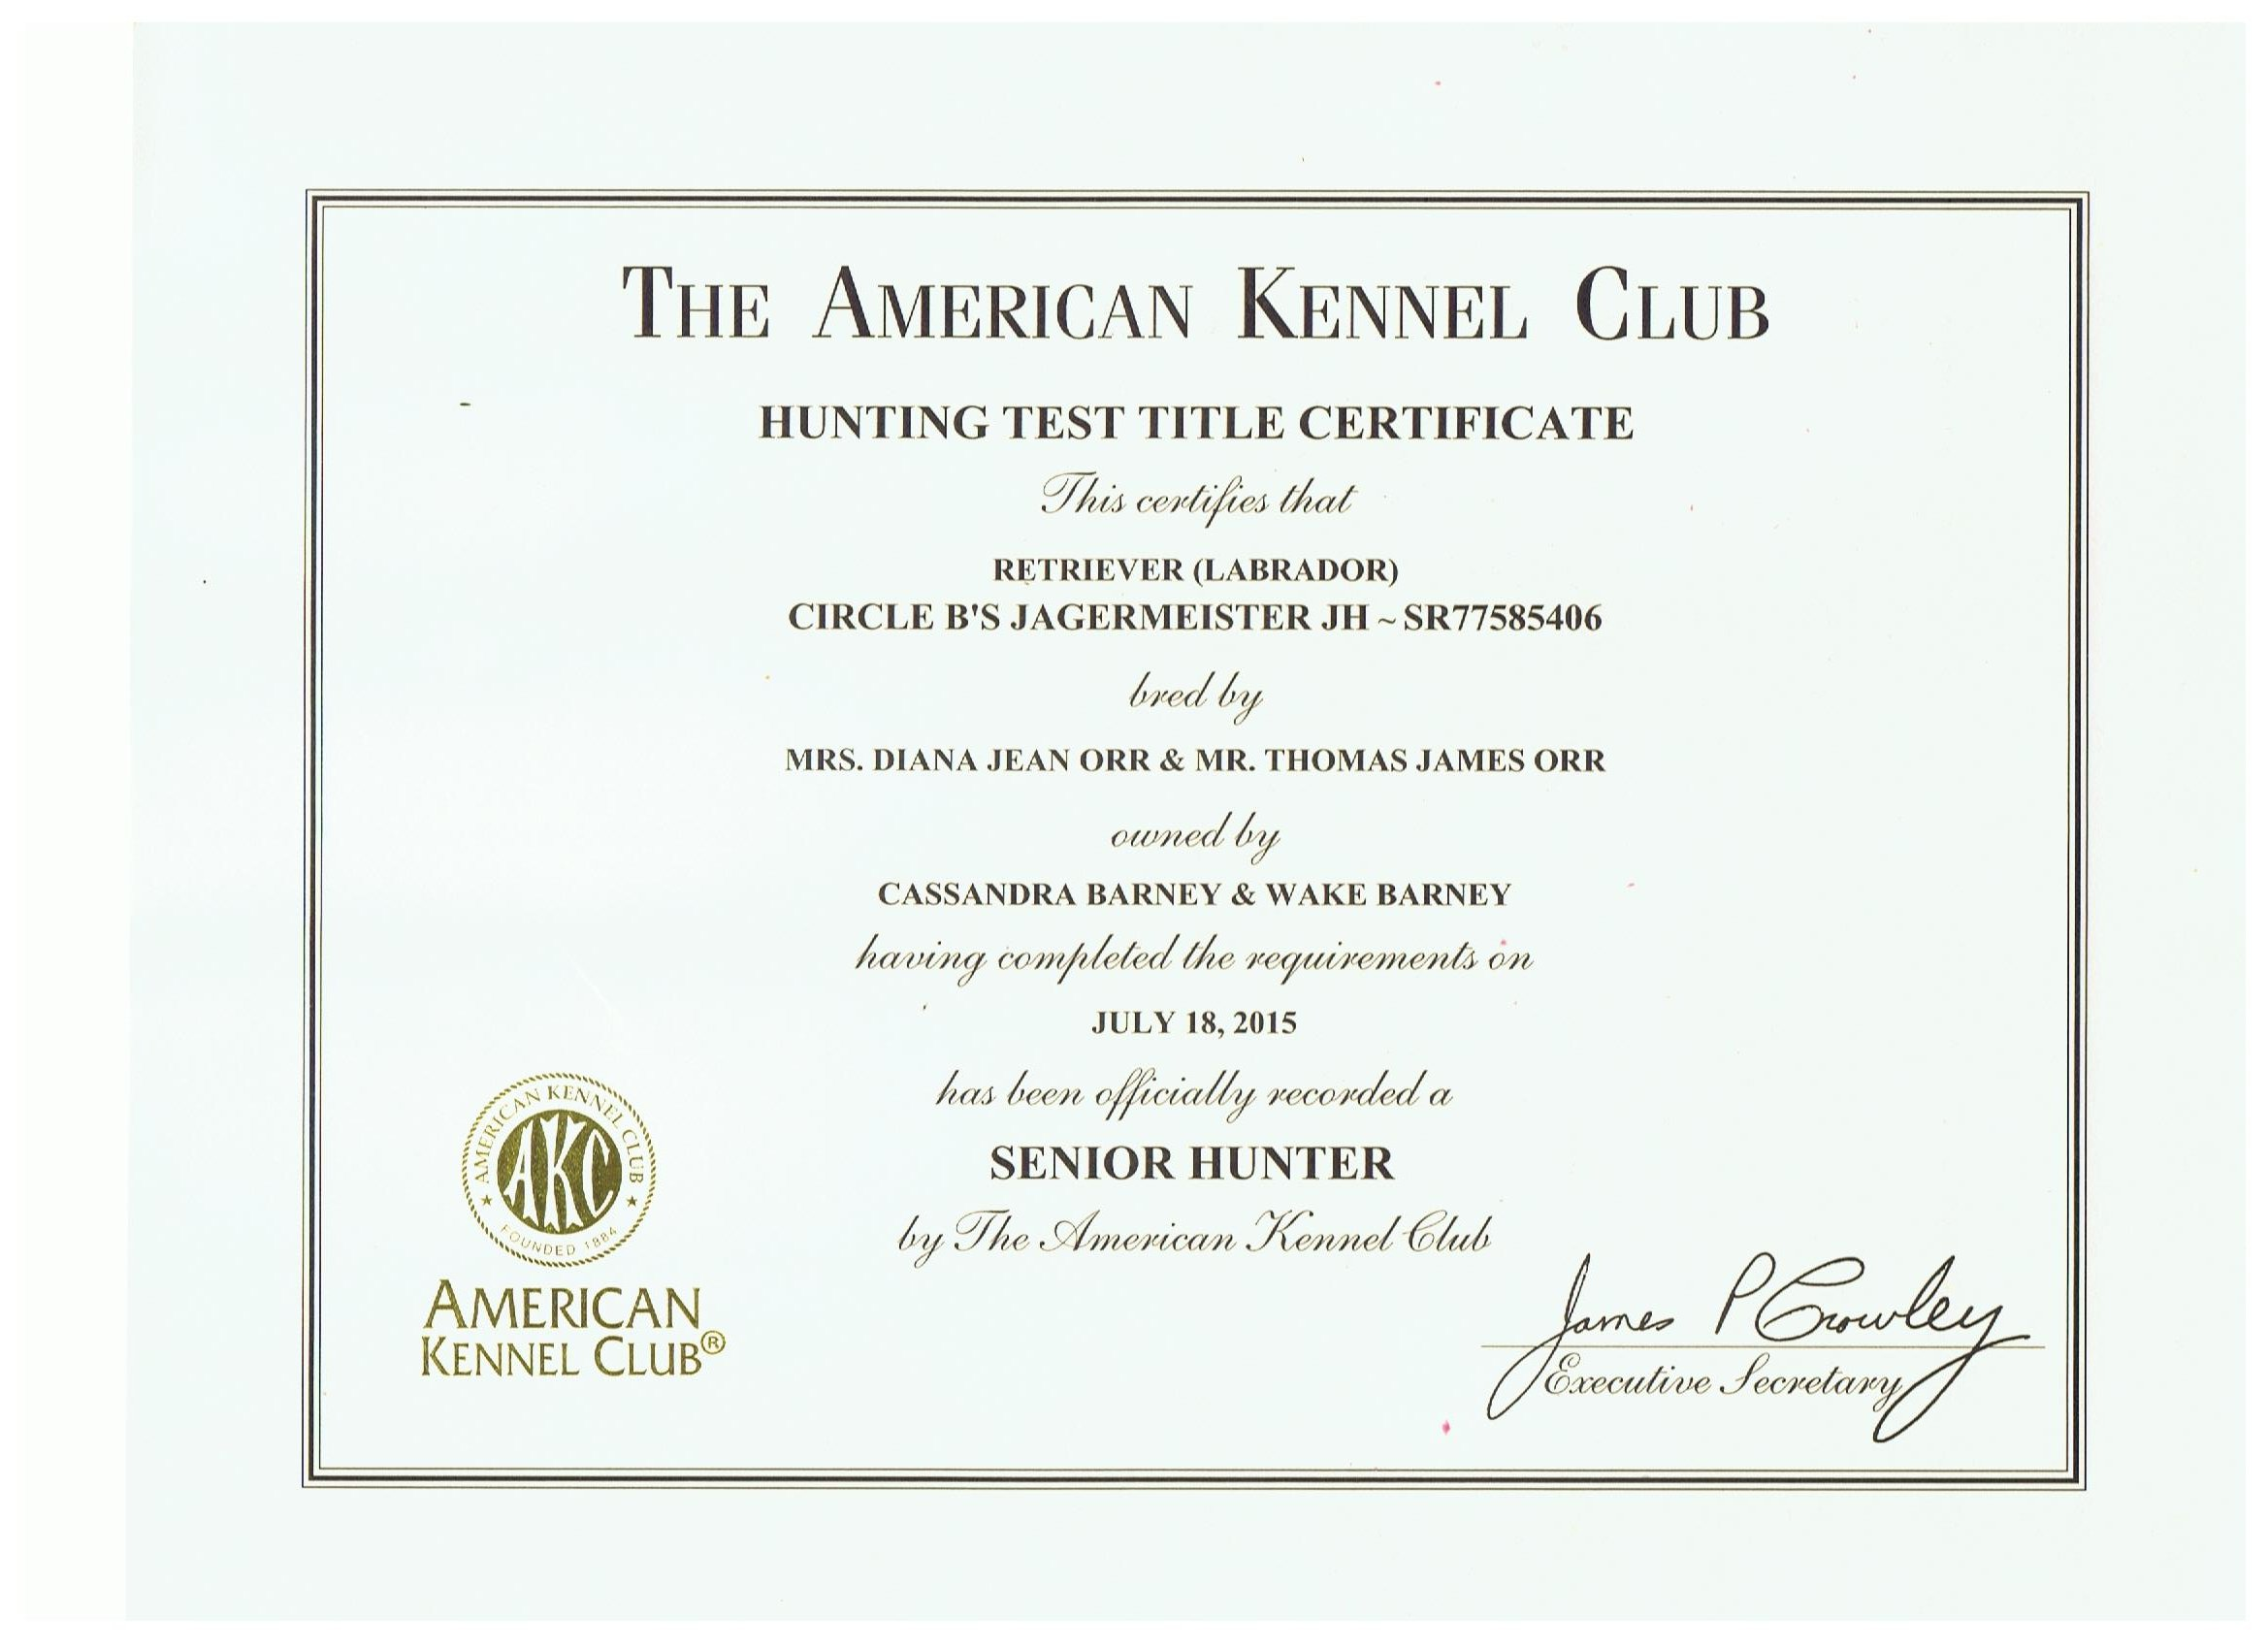 Jager's Certificate As Senior Hunter.